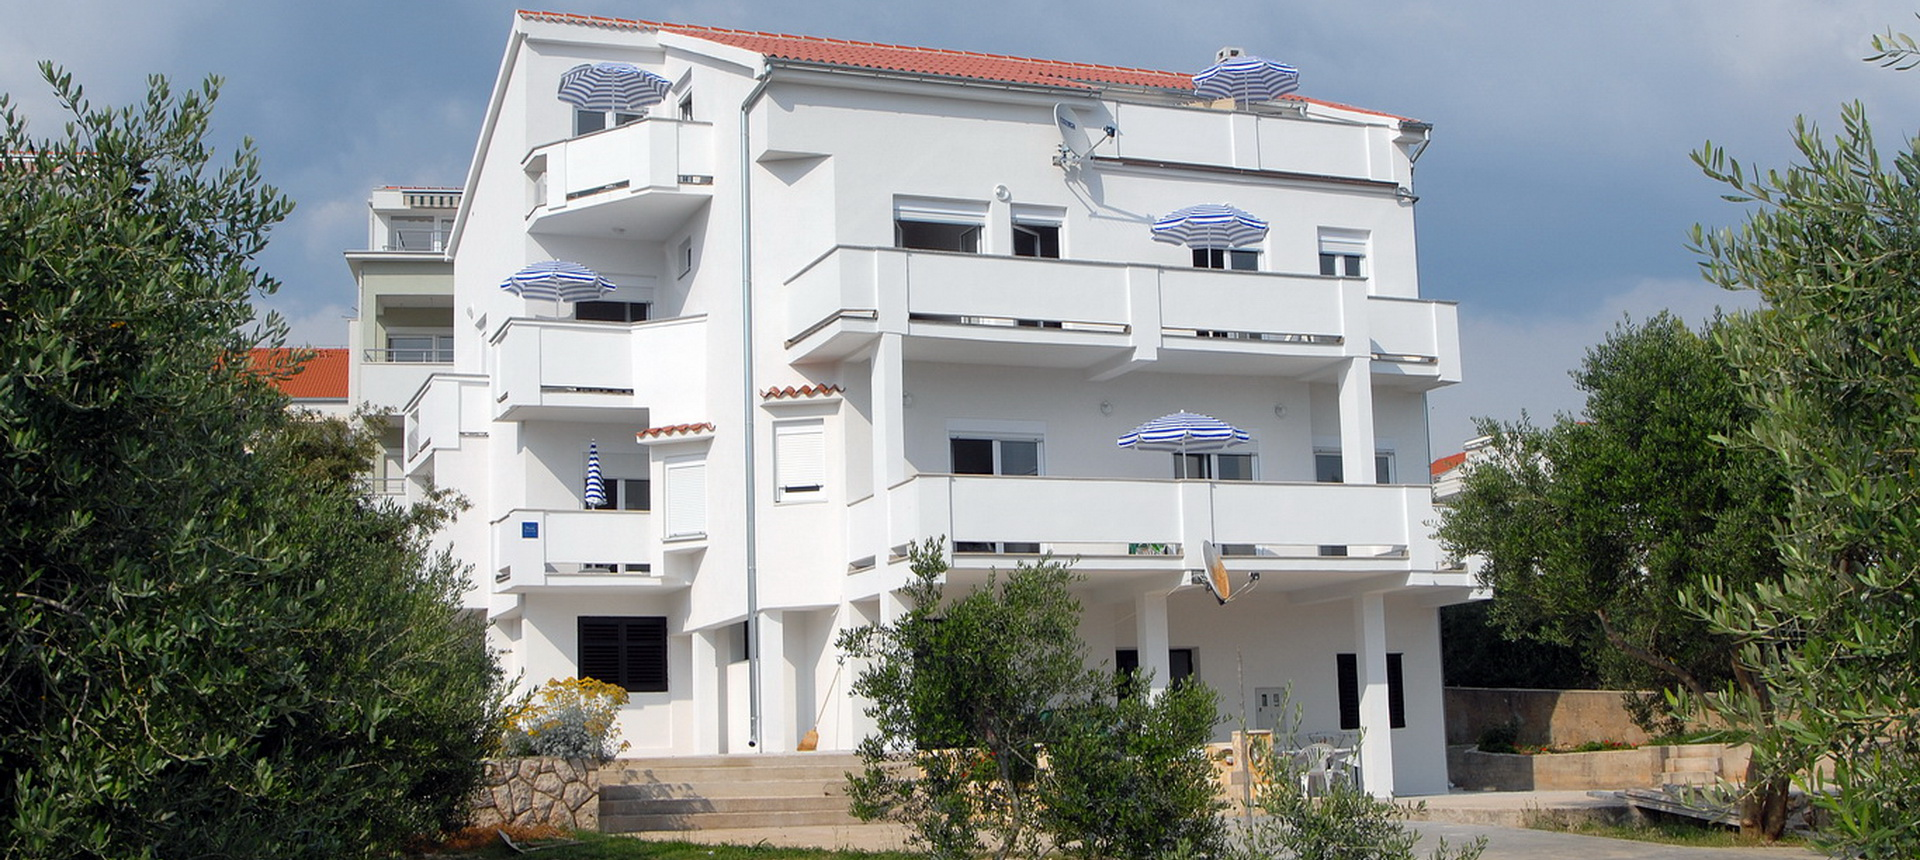 Novalja apartments